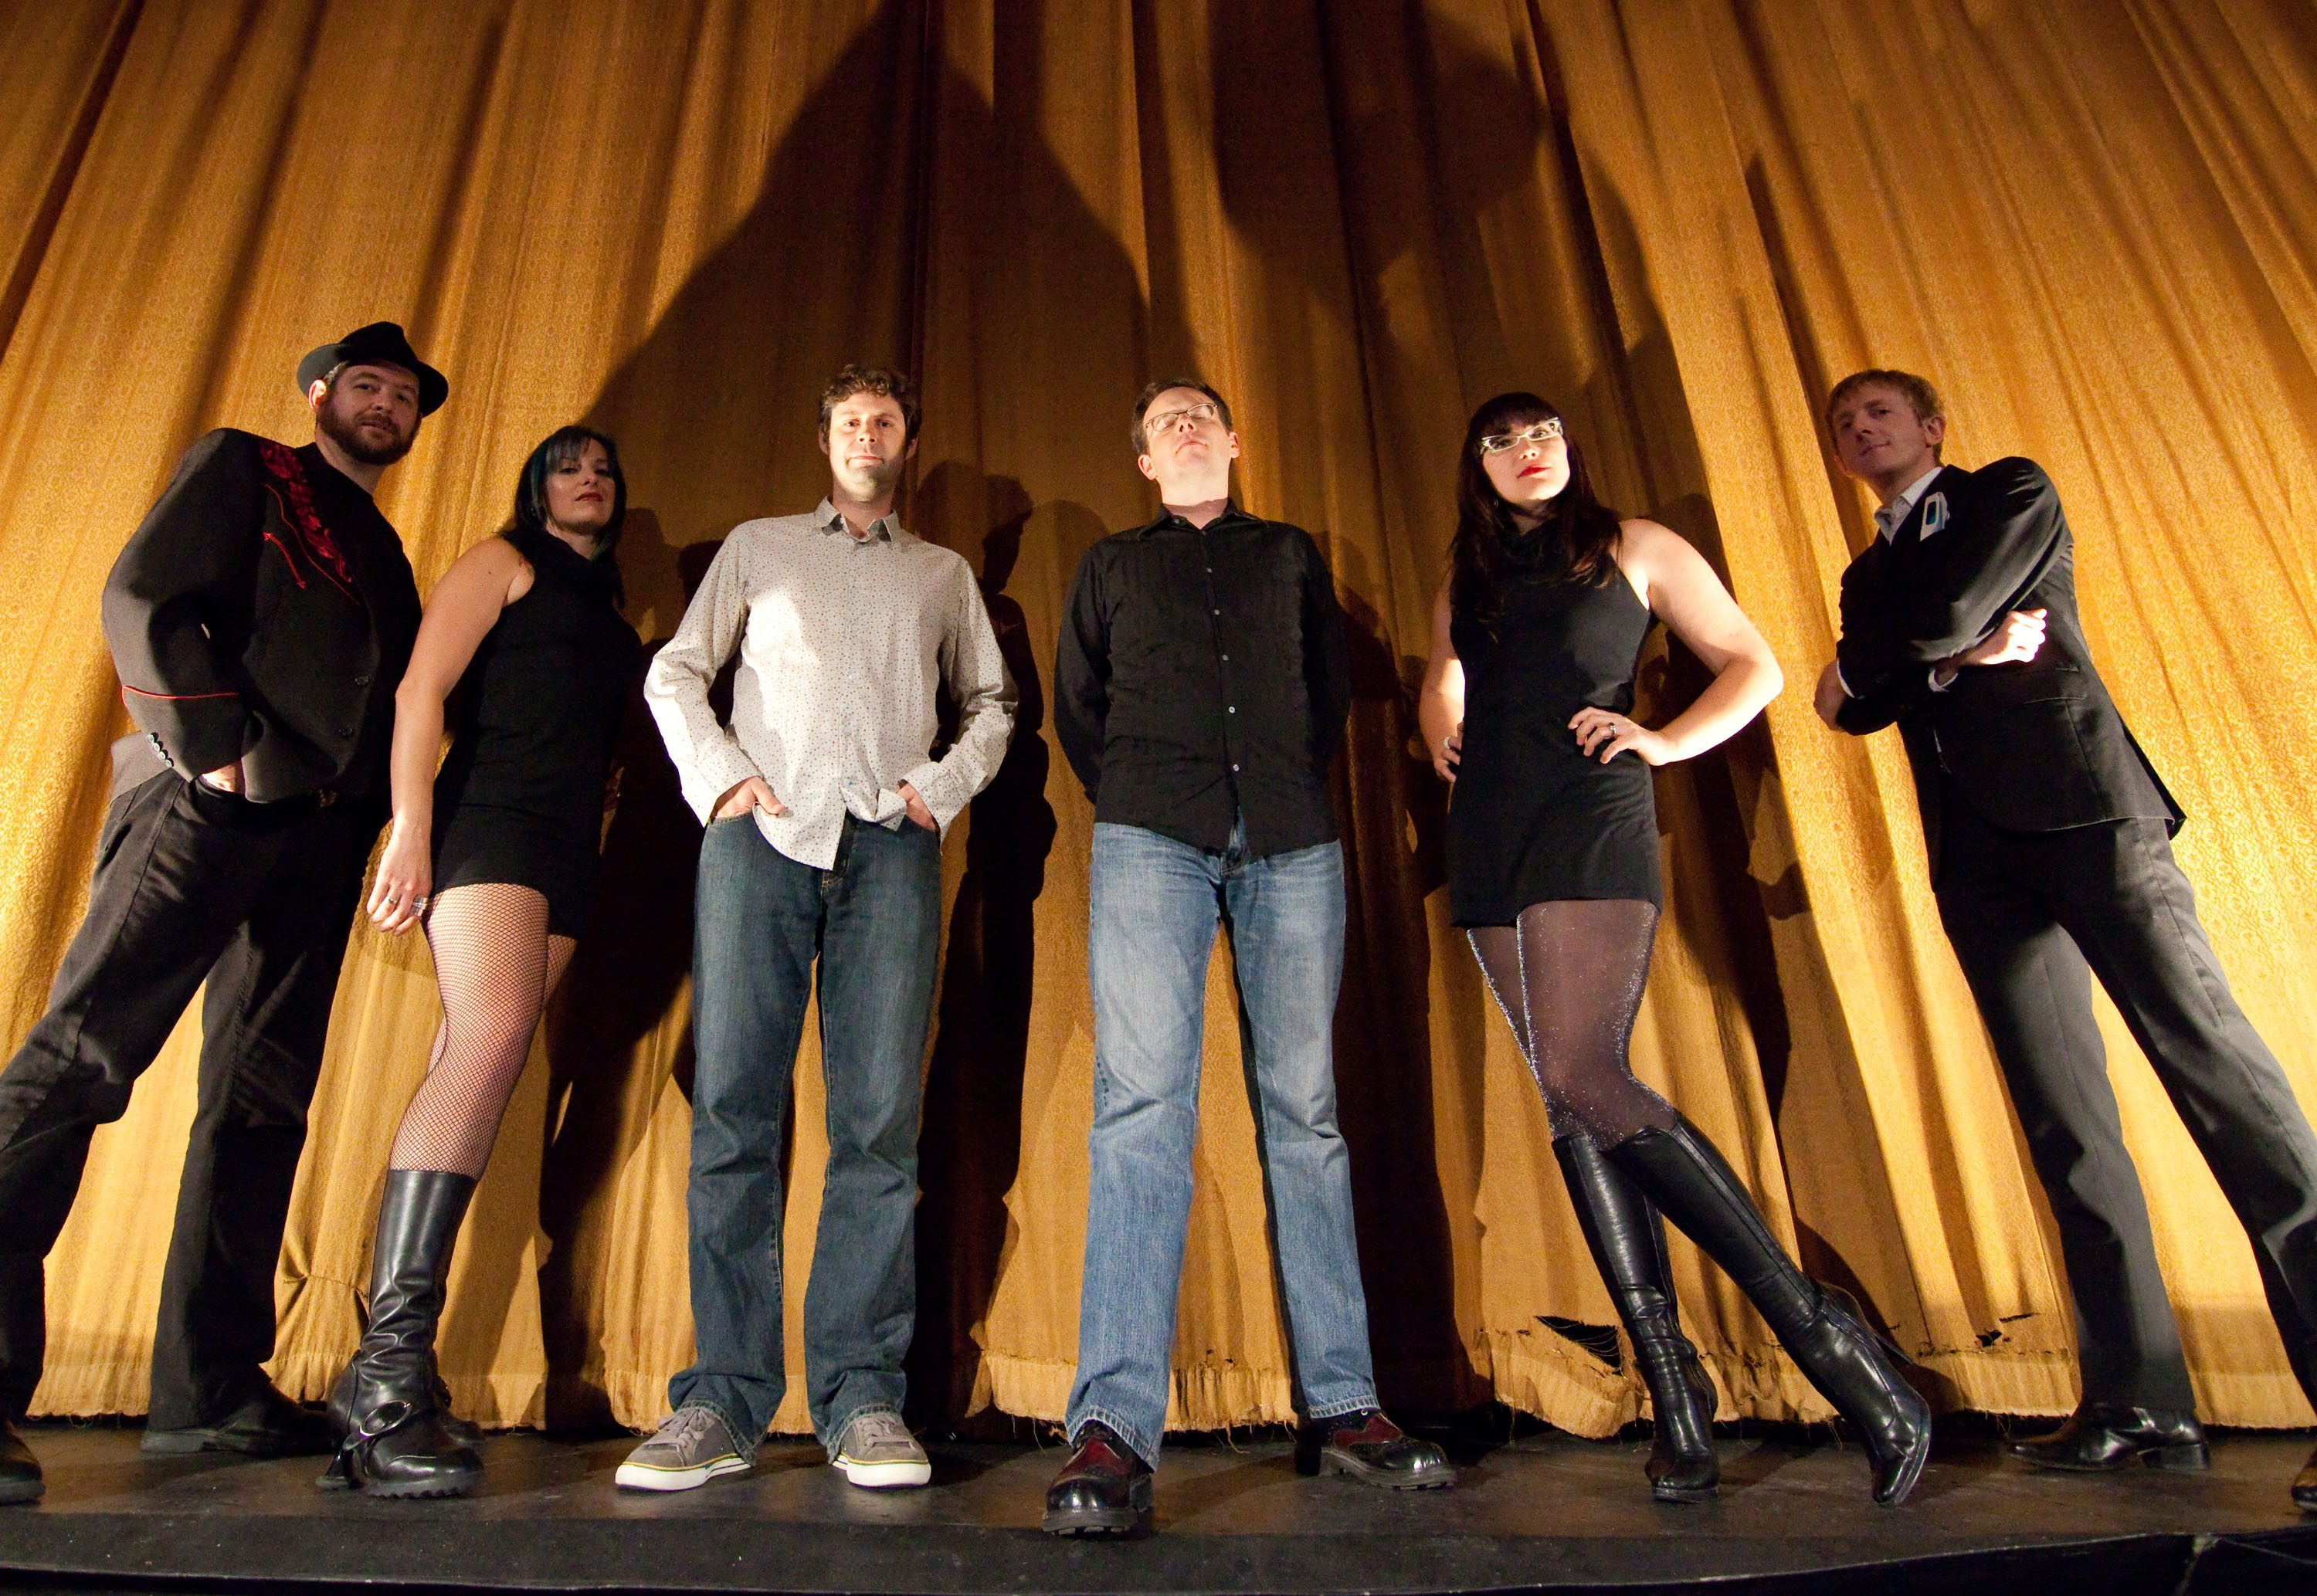 SOUND SEEKERS: The Reverb Syndicate vibrates with cinematic impressions